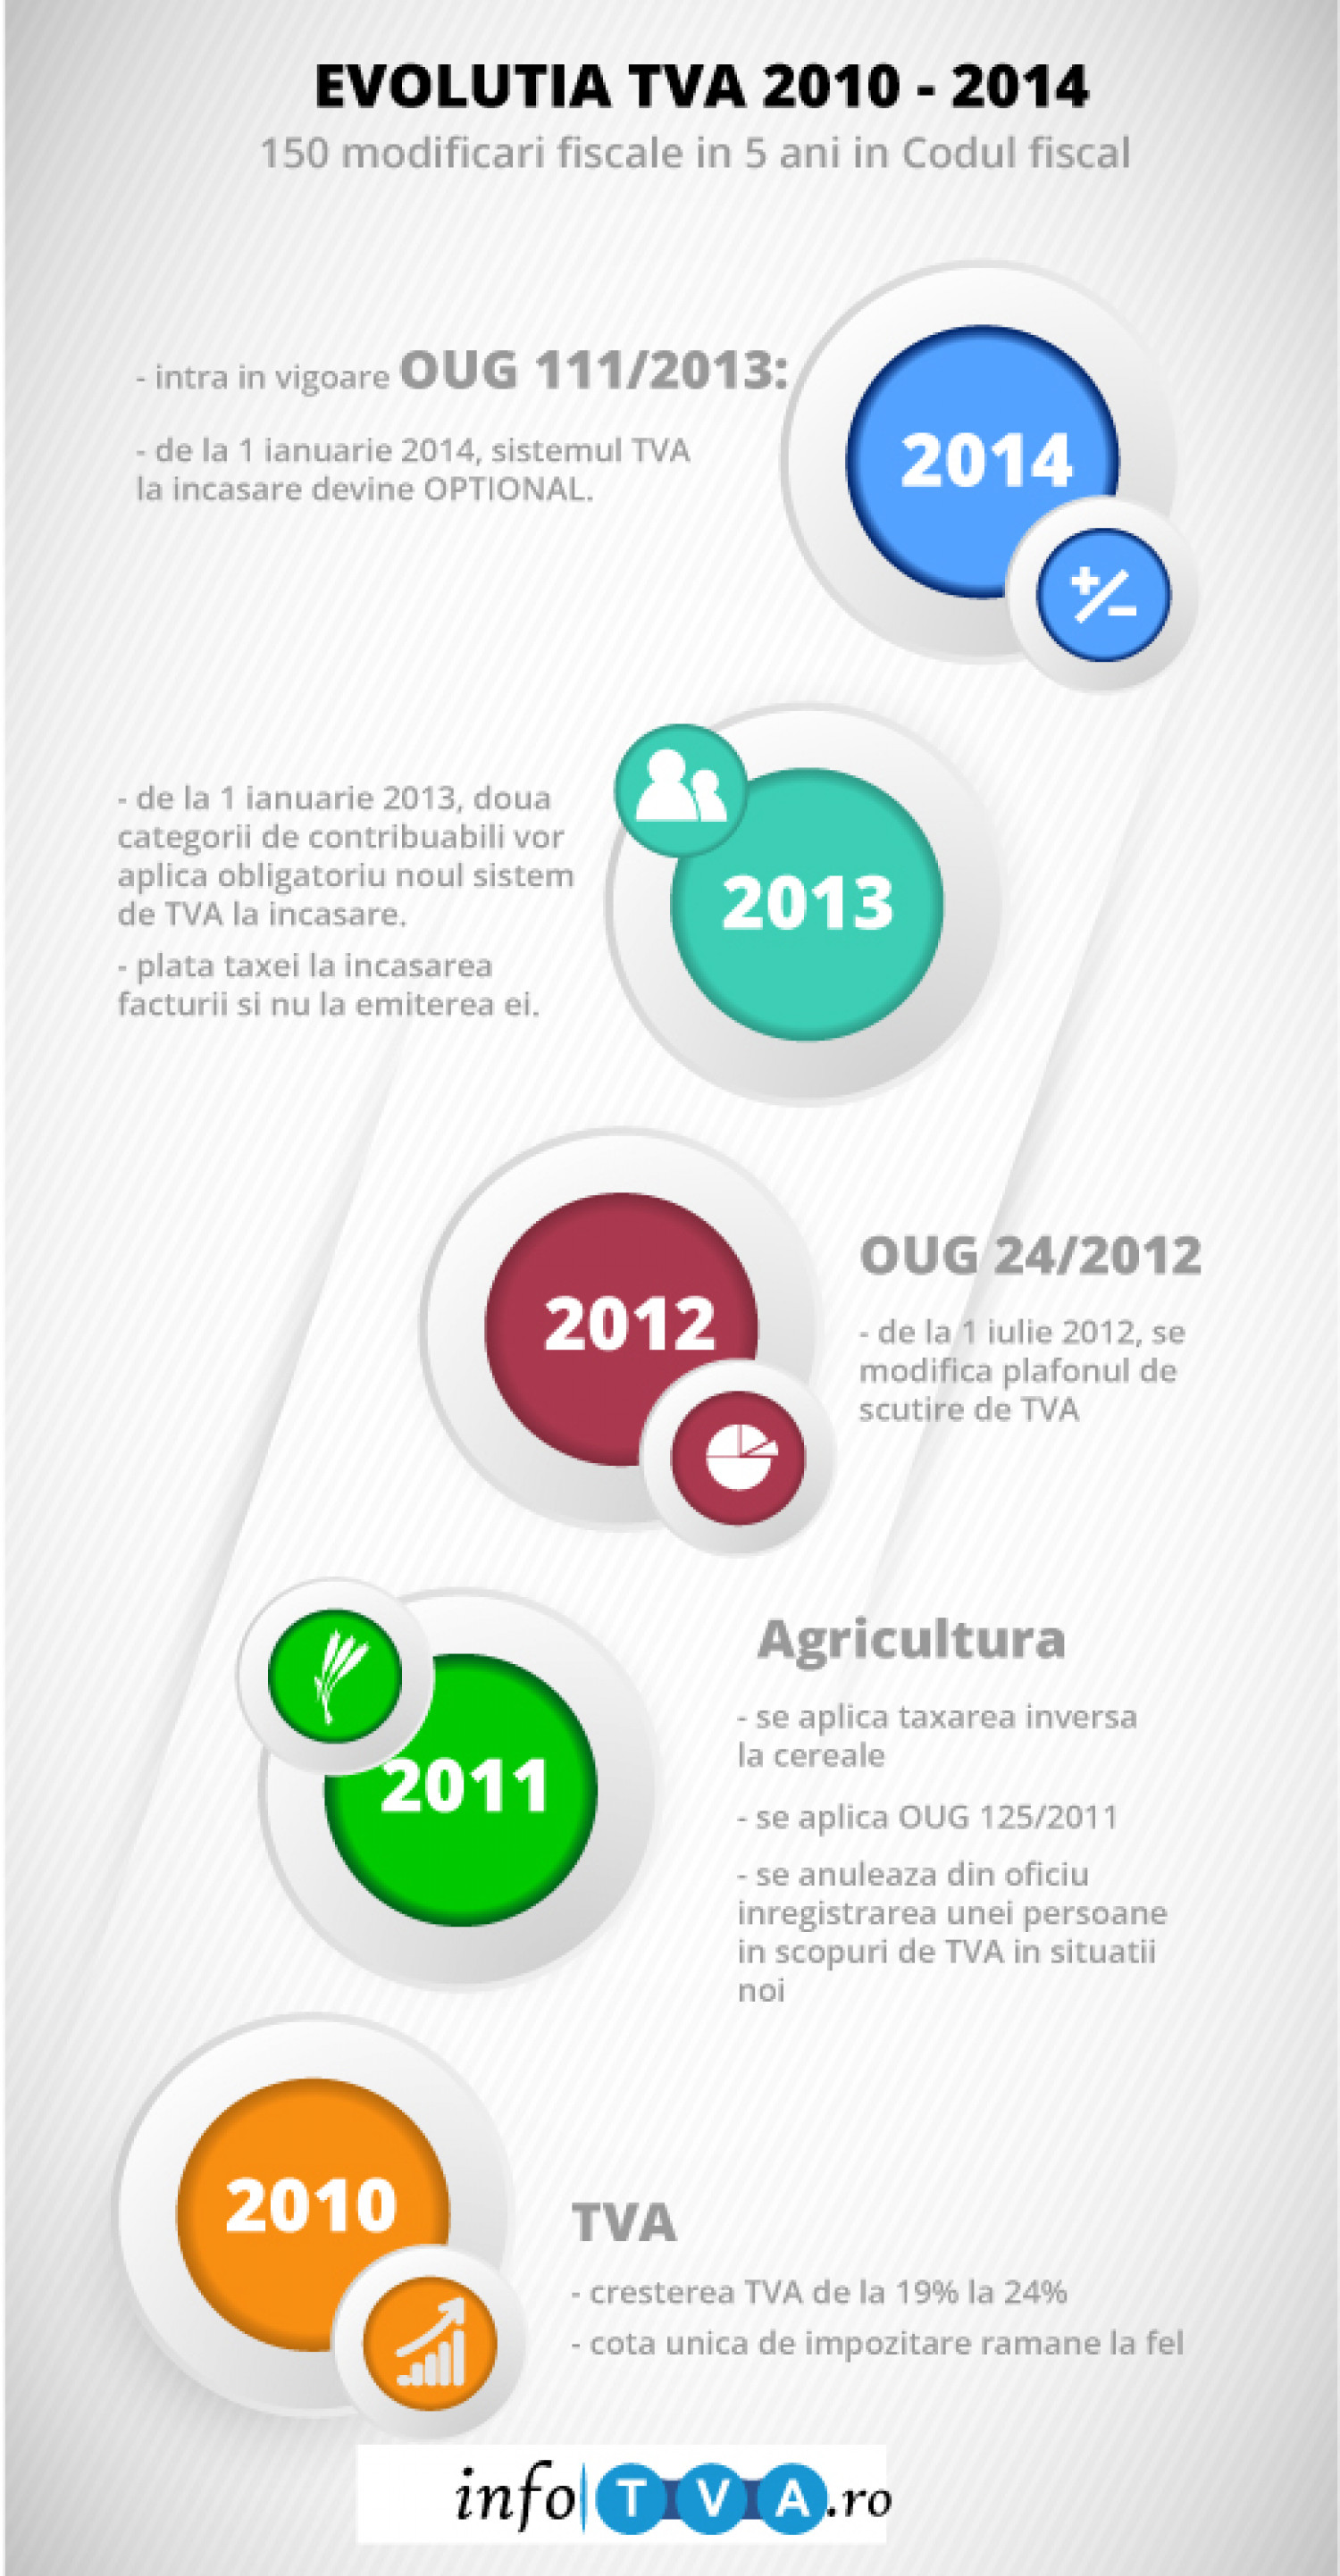 Evolutia TVA in Romania 2010 - 2014 Infographic